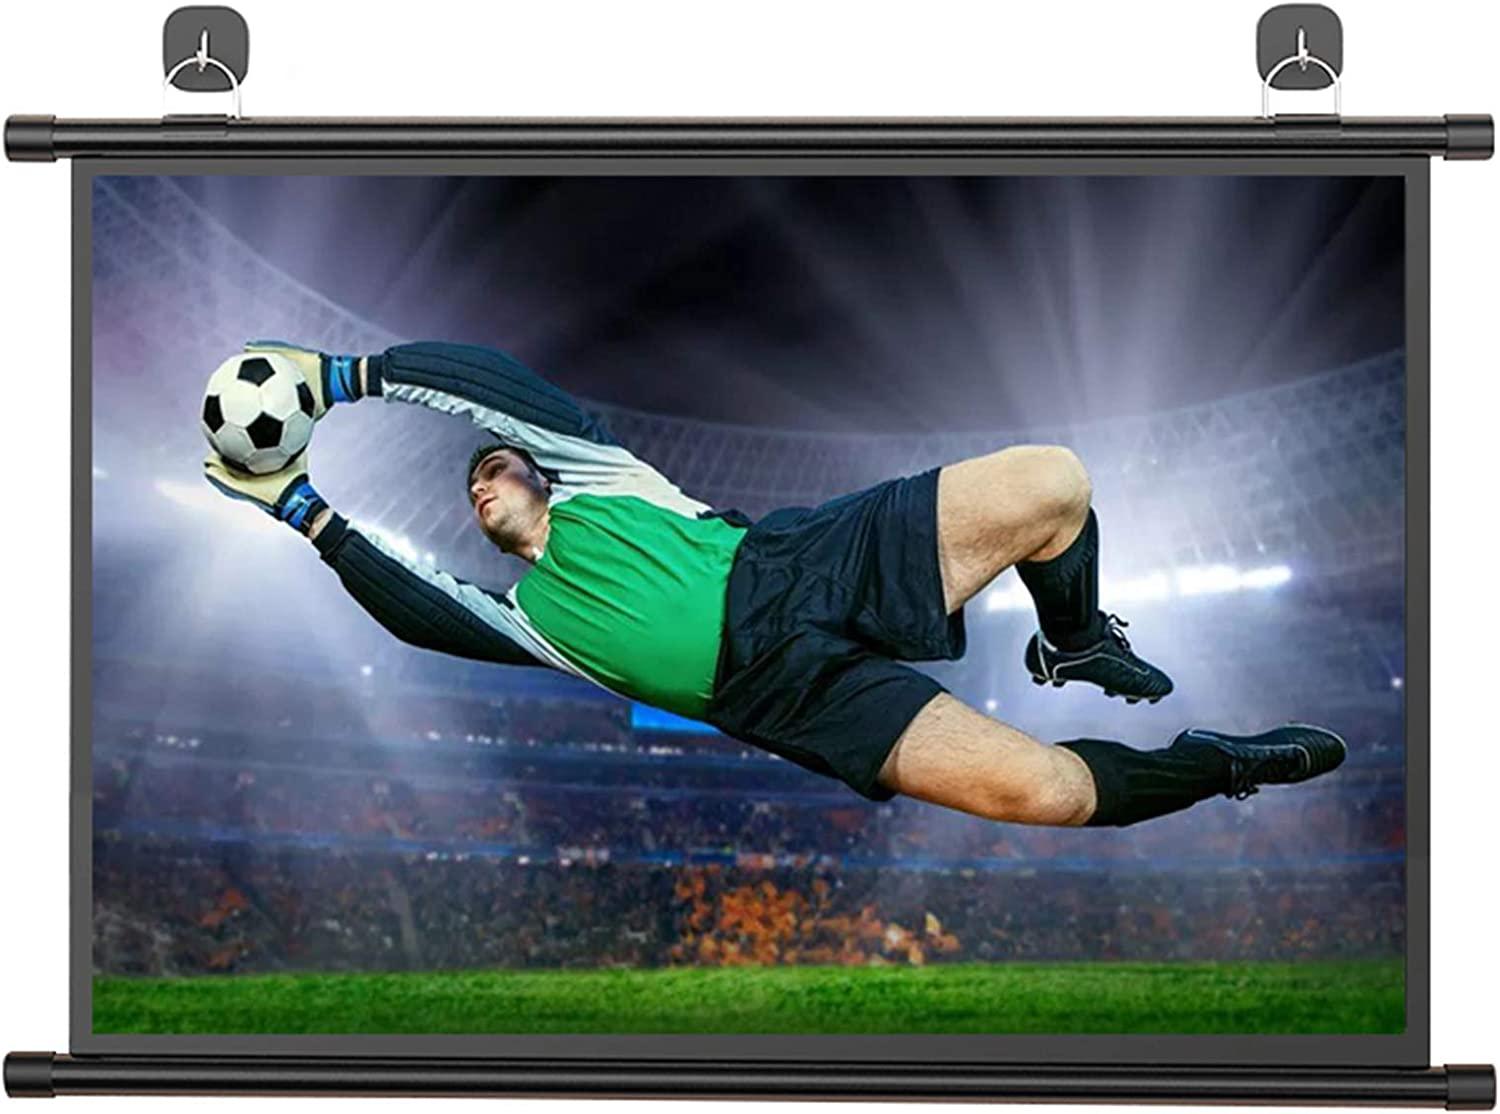 ALDS Hanging Projector Screen 60in 4:3 High Contrast Projection Screen Wrinkle-Free Easy Pull Public Display Screen for Entertainment Demo Room